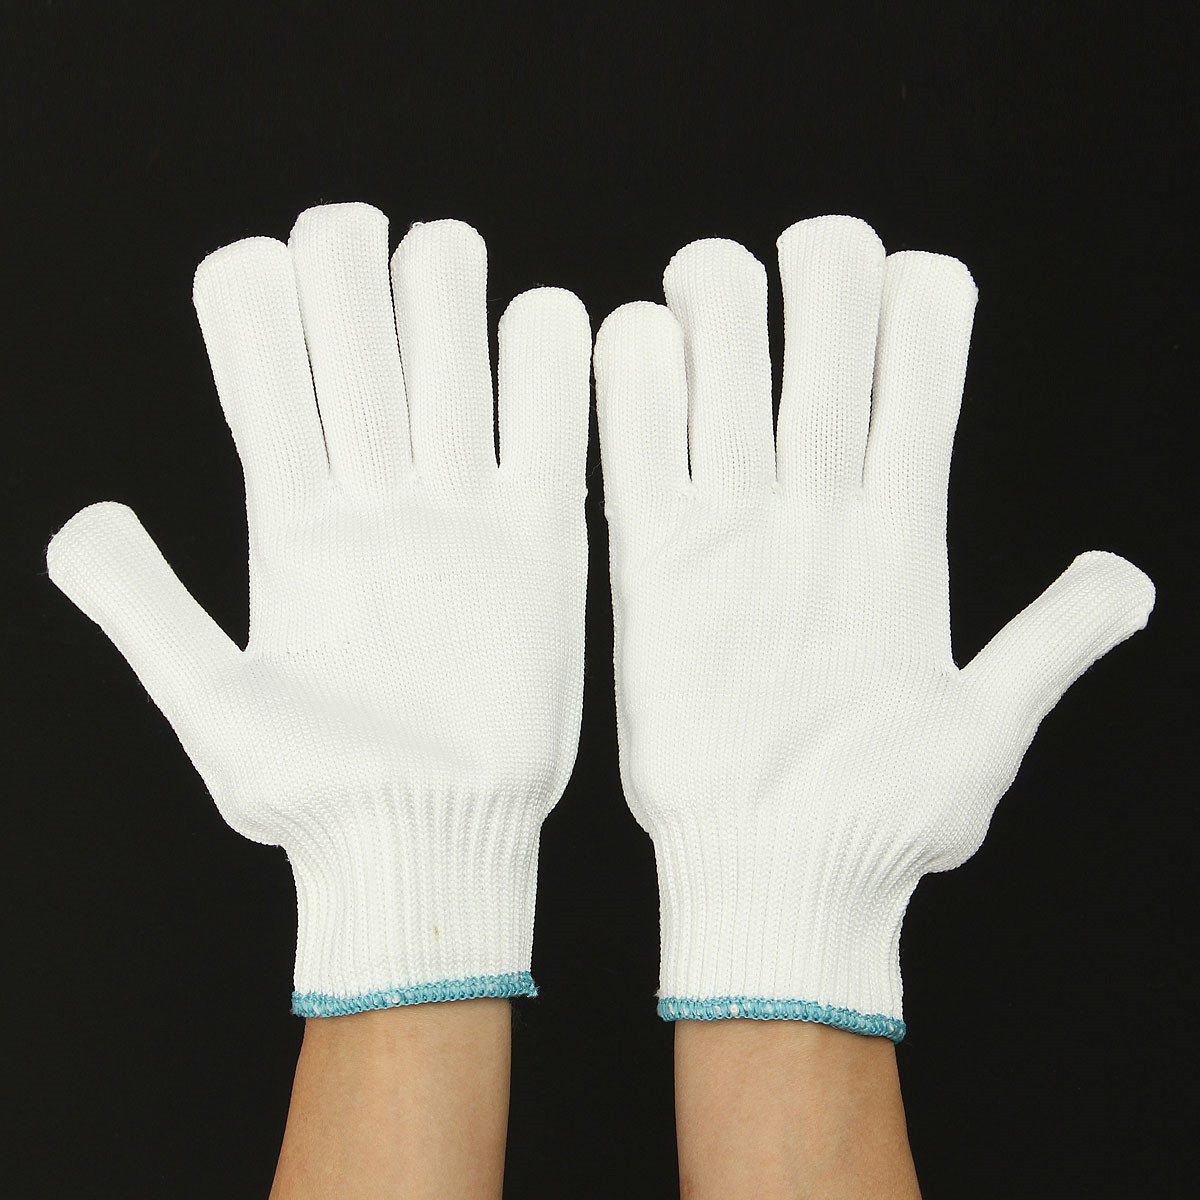 NEW Safurance Heat Resistant Anti Protection Burn Hot Heatproof Glove BBQ Oven Kitchen Gloves Workplace Safety